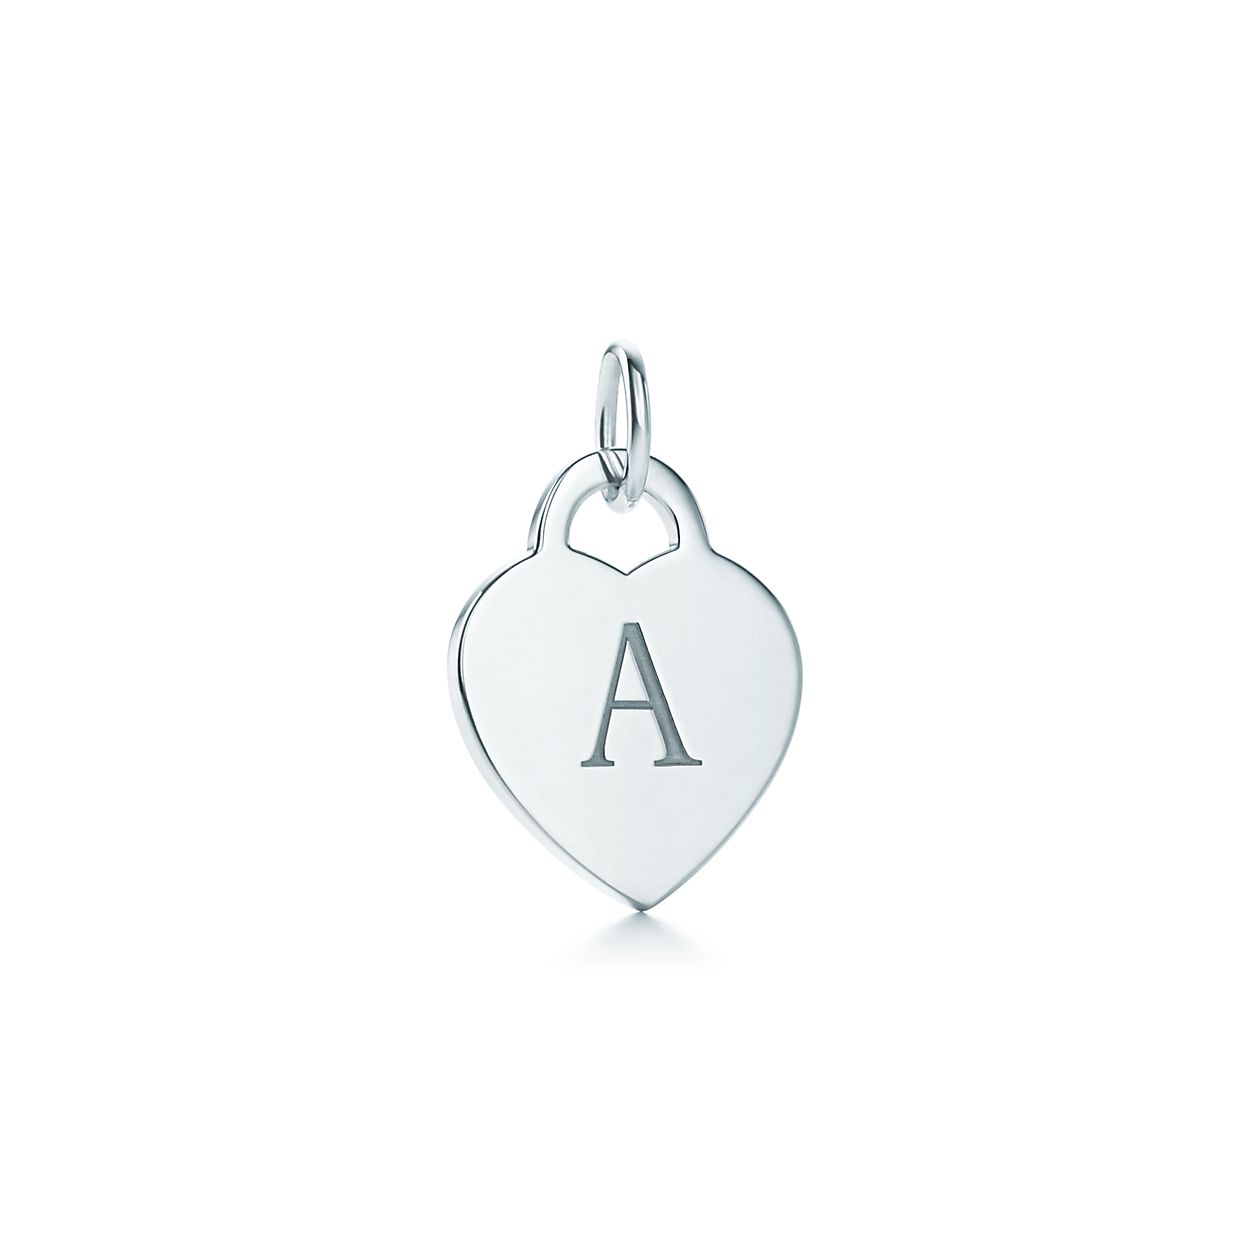 Tiffany Charms alphabet charm in sterling silver Letters A-Z available - Size B Tiffany & Co. fHFRdbzDXC